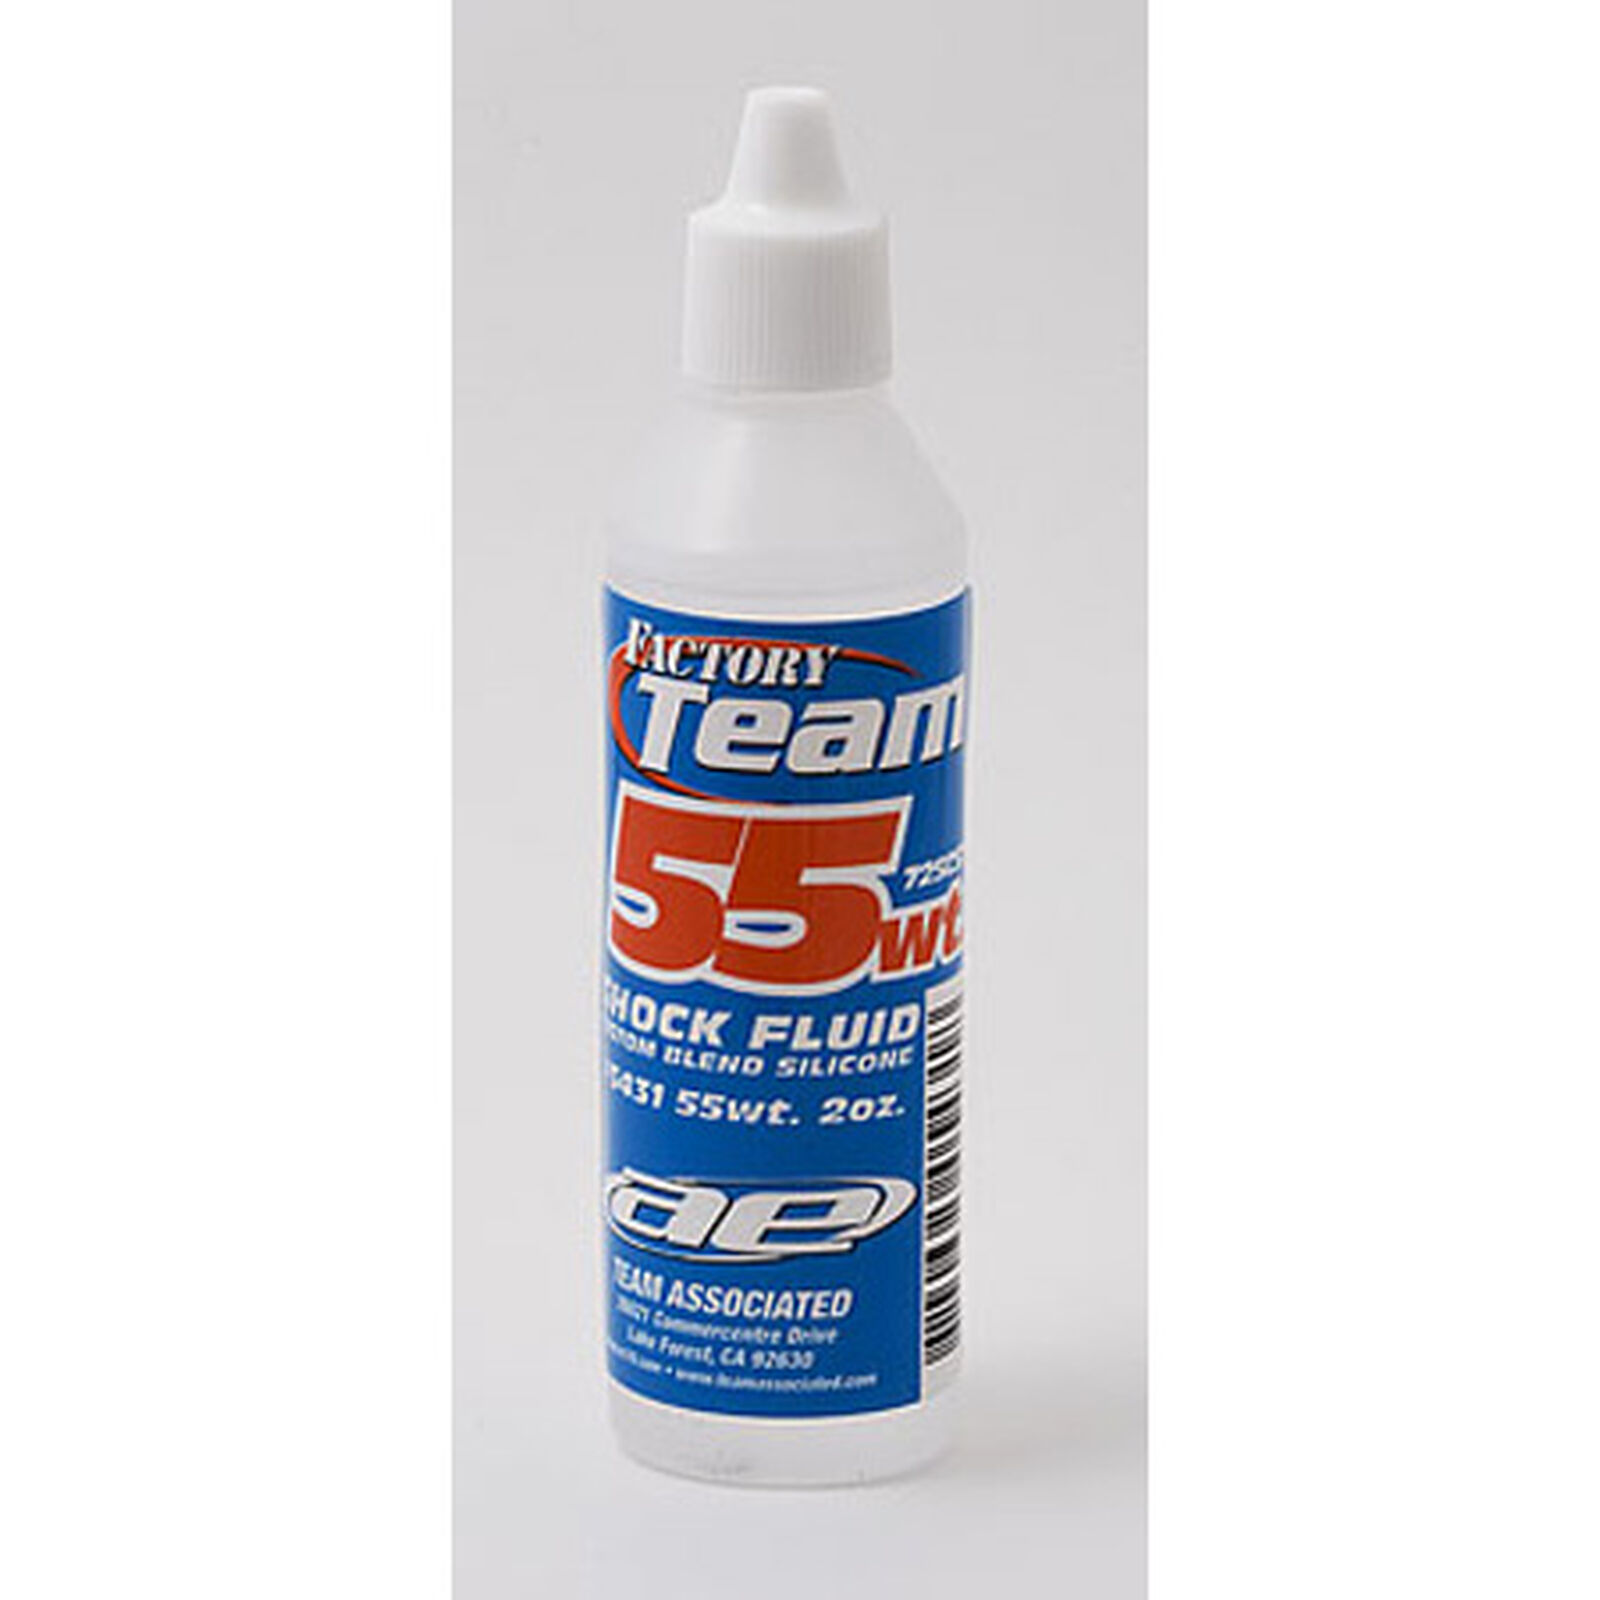 Factory Team Silicone Shock Fluid, 55Wt (725 cSt) 2 oz